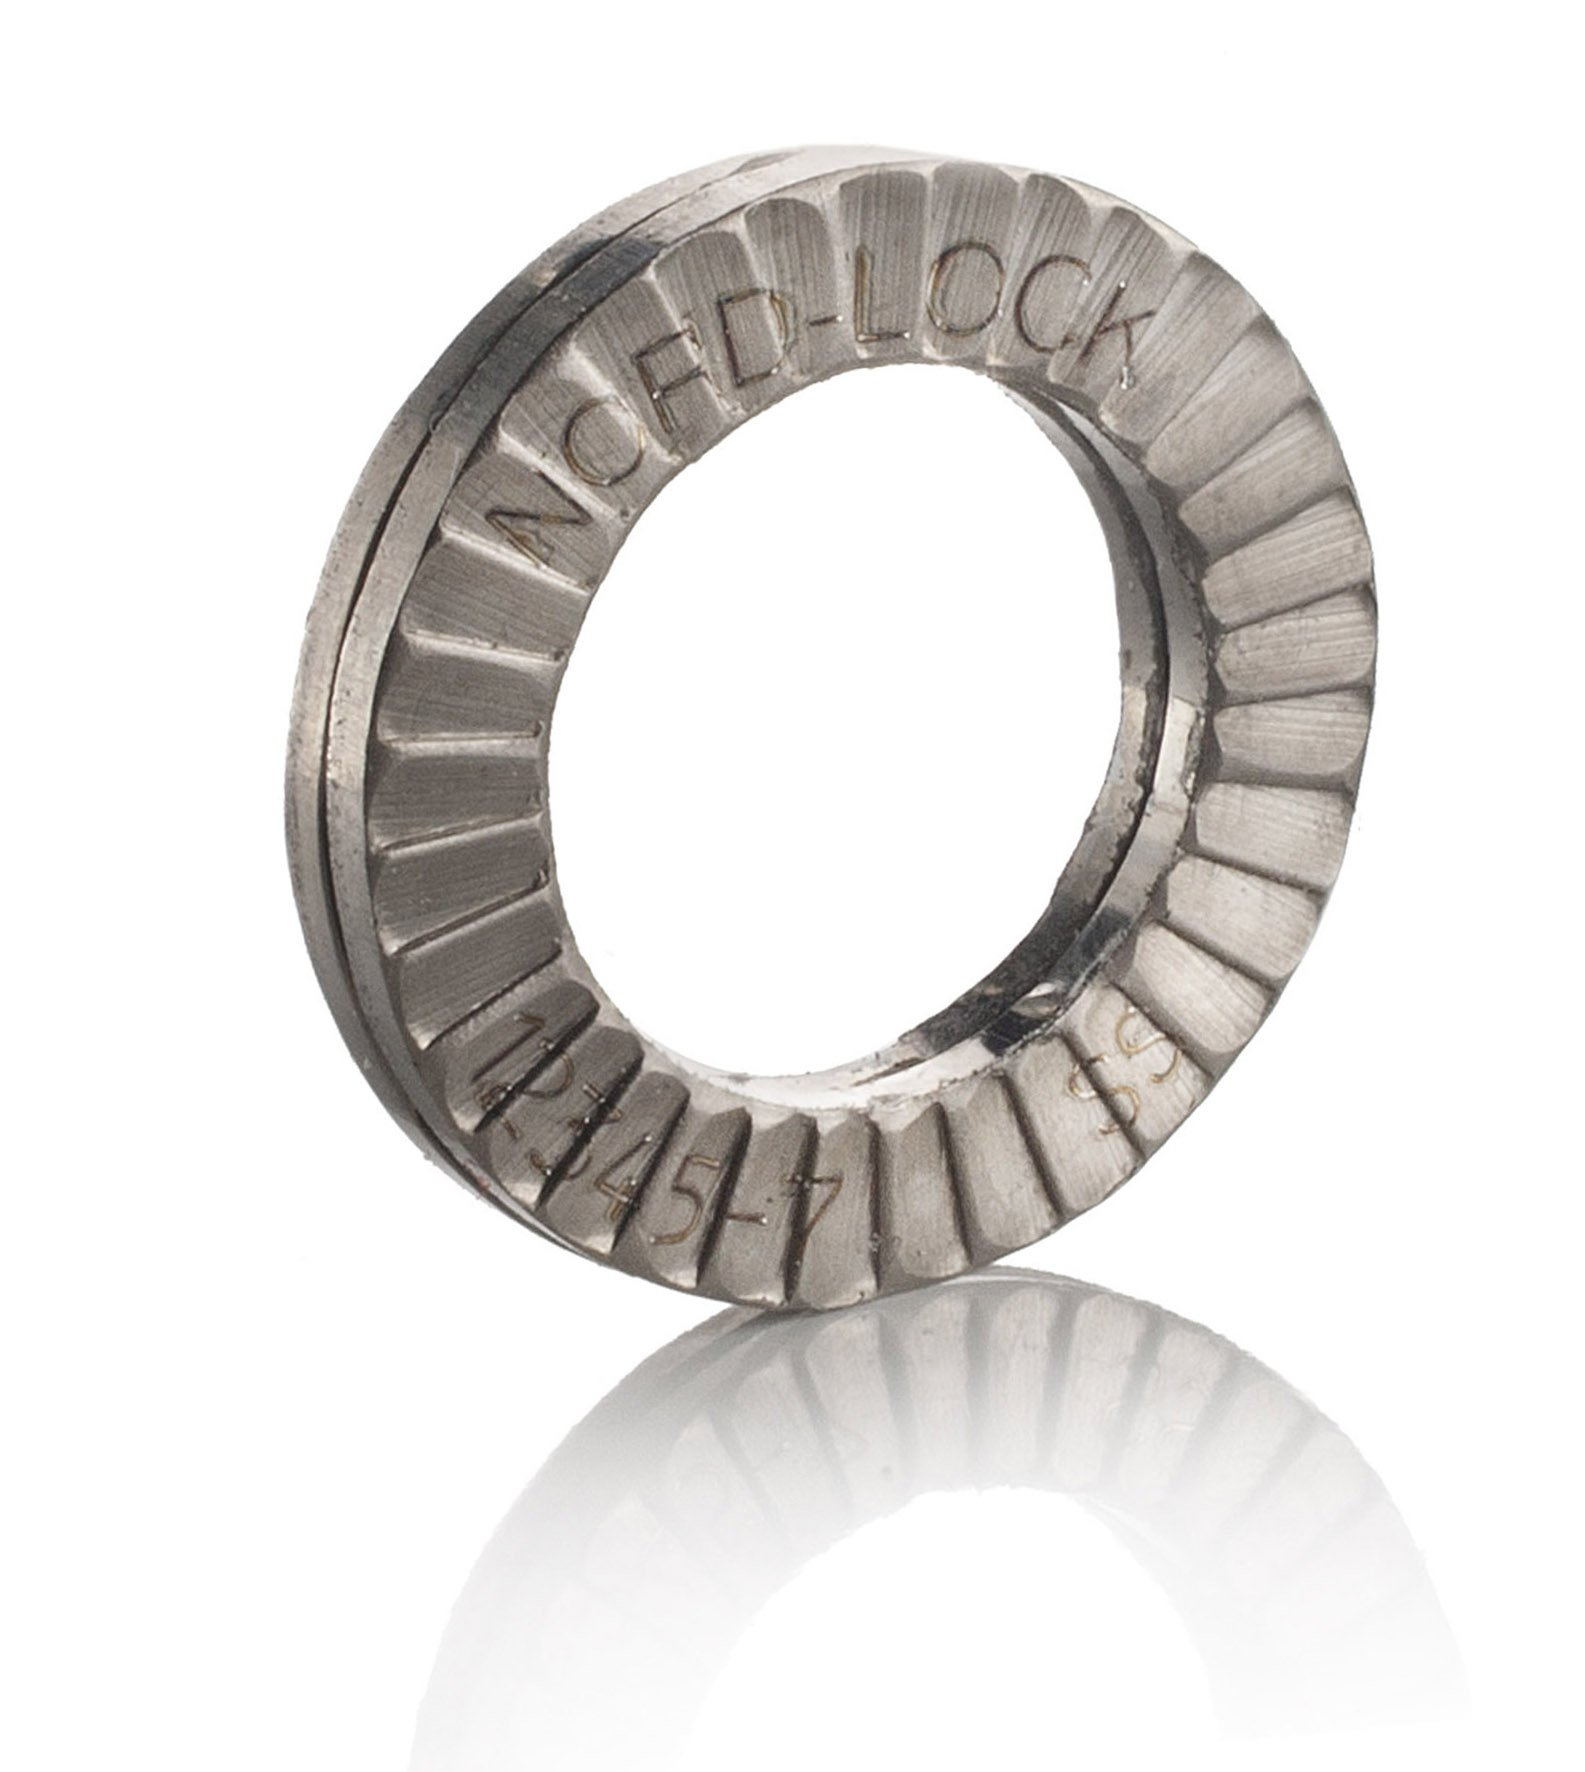 Nord-Lock Wedge locking washer Stainless Steel M6 200 glued pairs/box by Nord-Lock (Image #1)